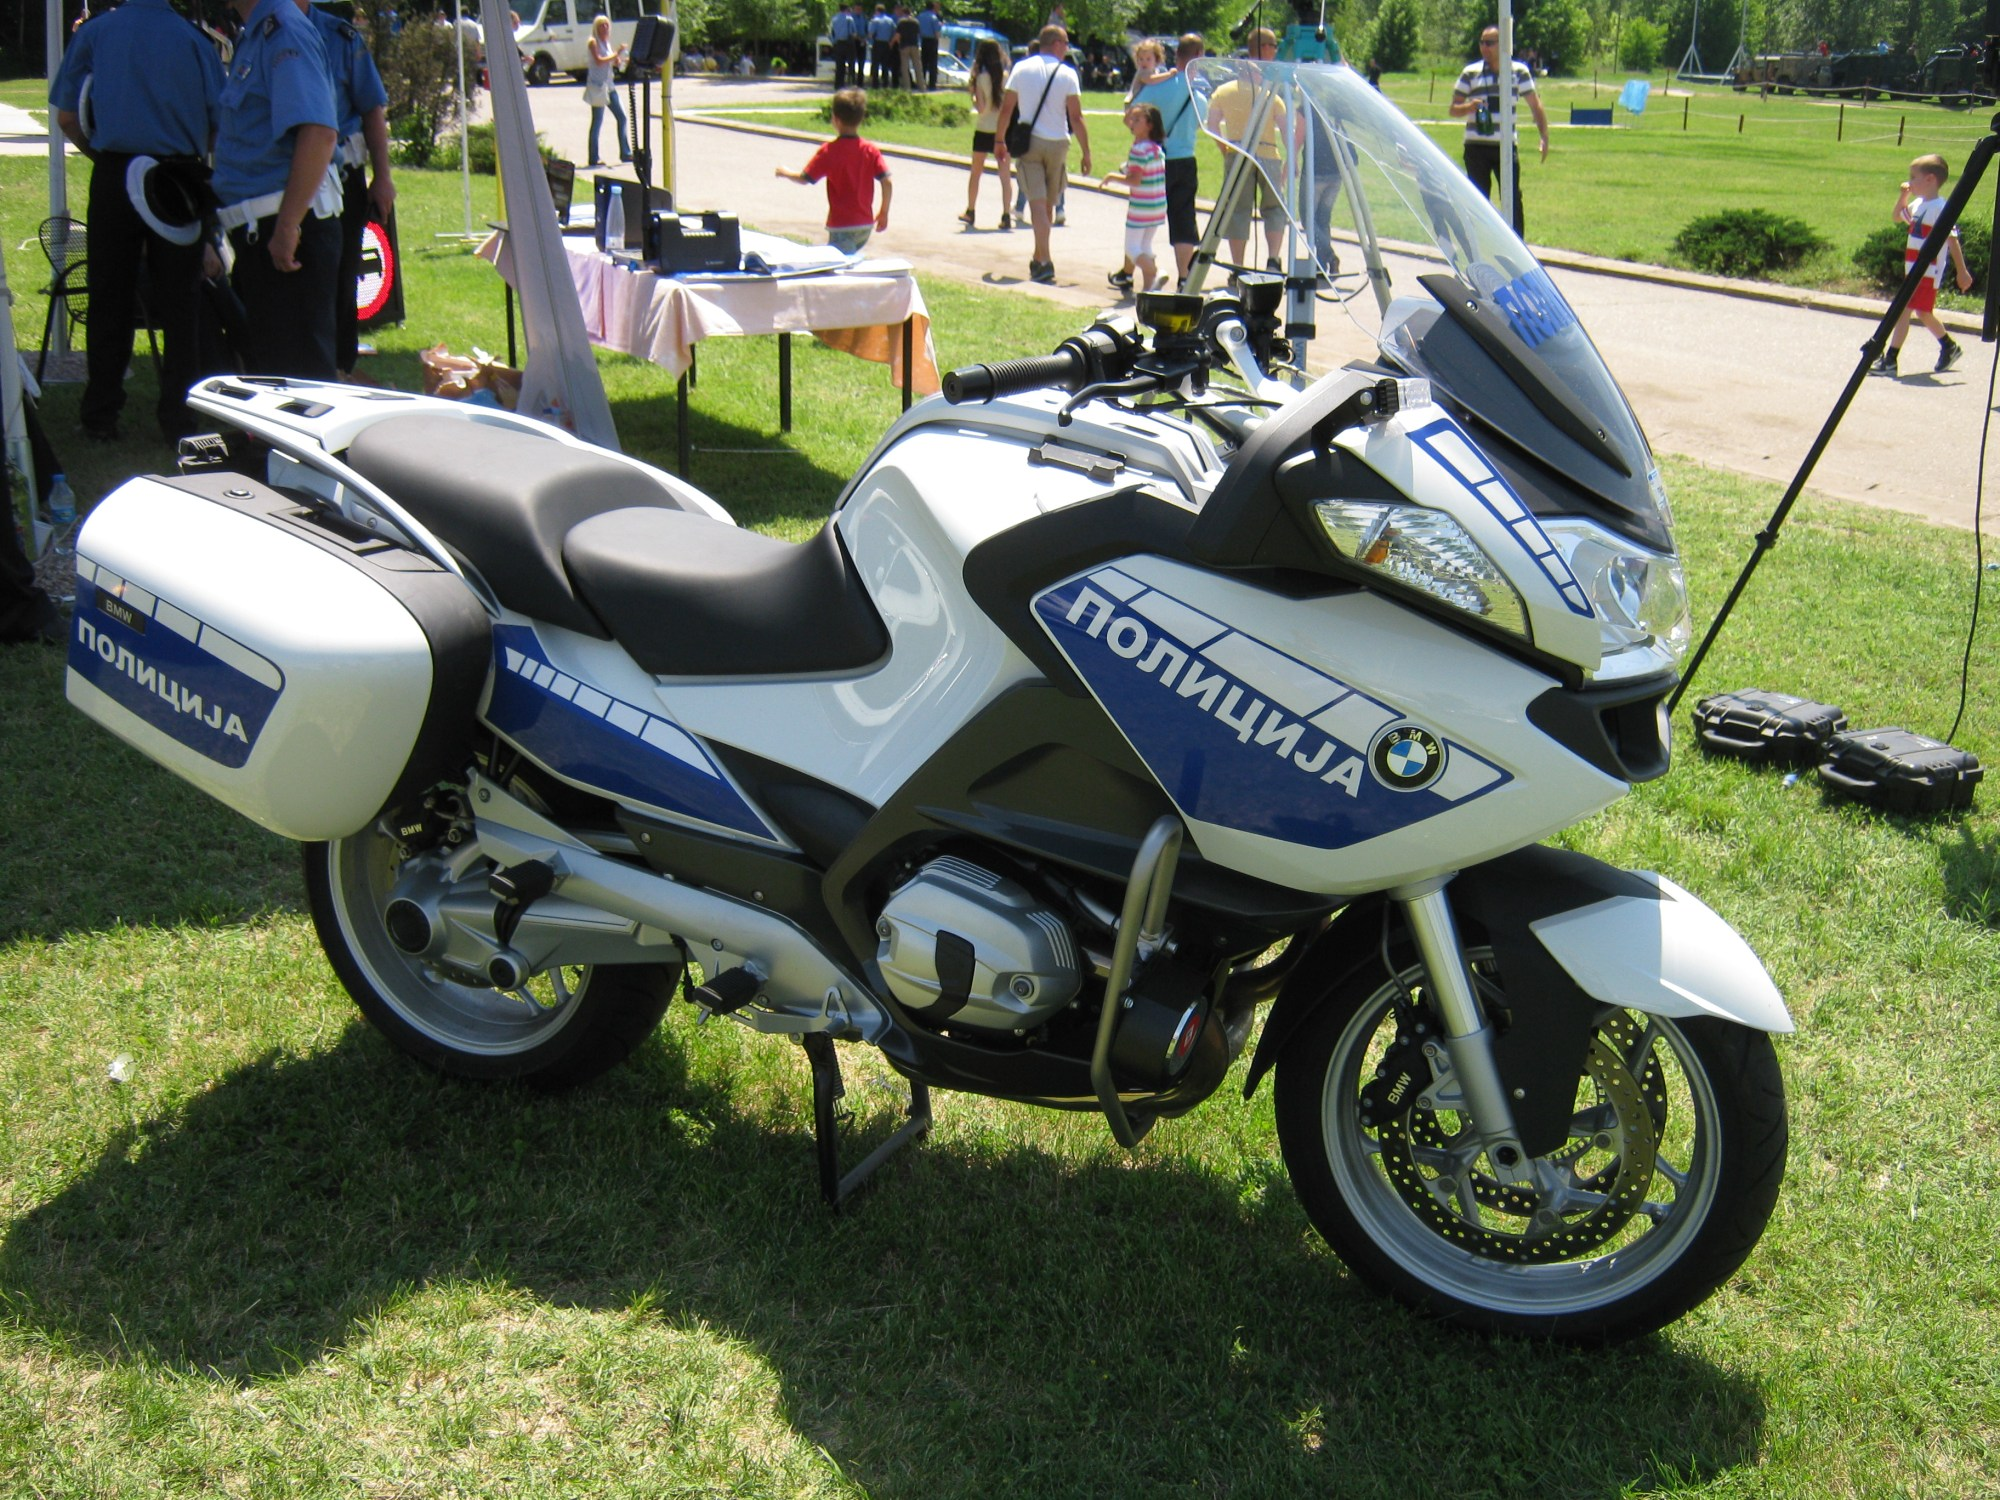 hight resolution of file bmw motorcycle police jpg